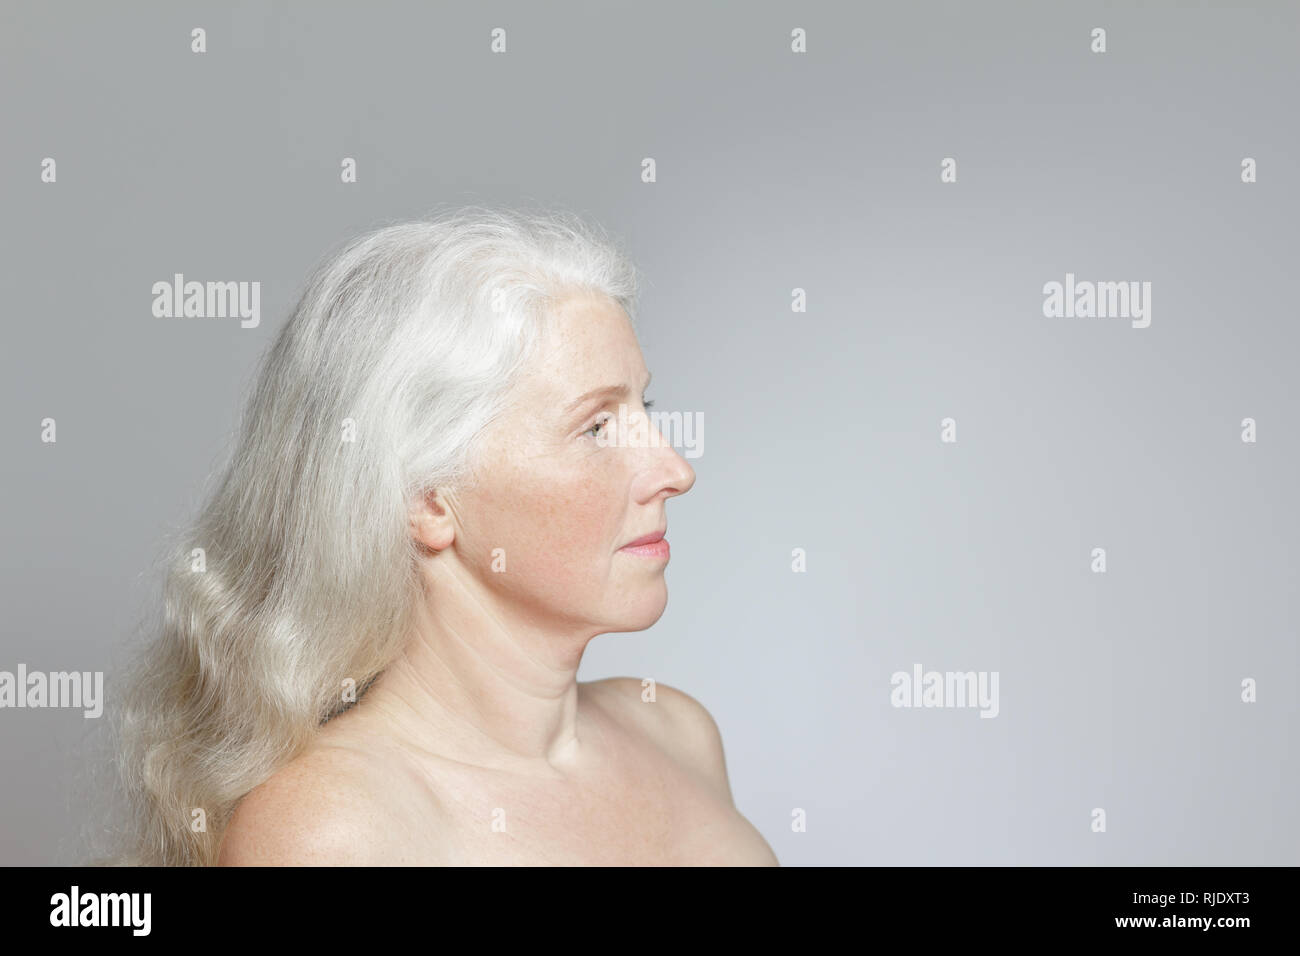 Side view of a mature woman with shiny long white hair, but without make-up, gray background, copy space. Stock Photo